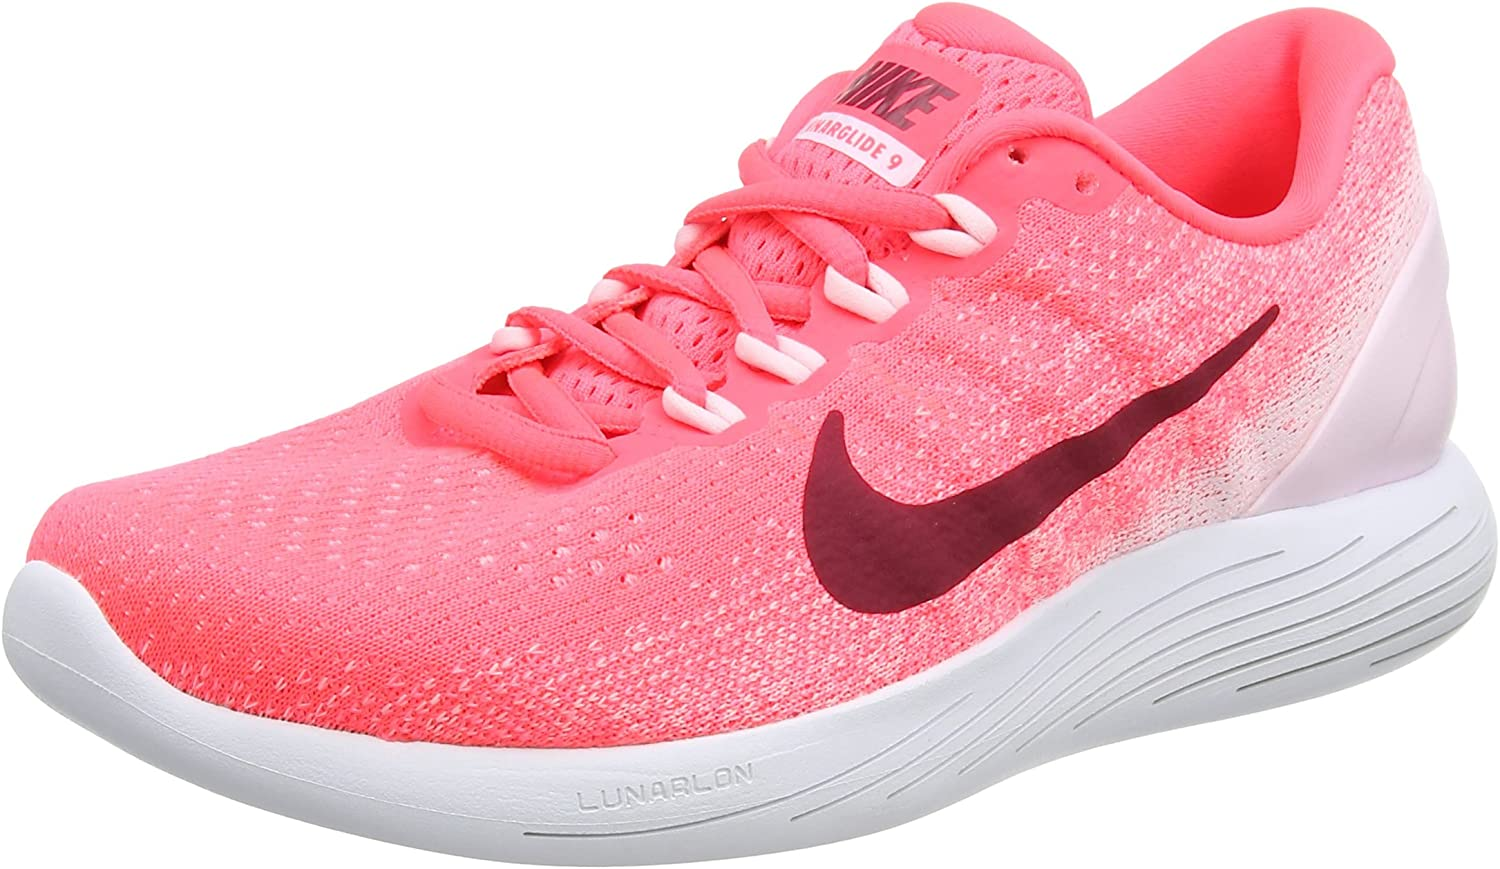 Nike Lunarglide 9, Zapatillas de Running para Mujer, Multicolor (Hot Punch/Noble Red-Arctic Pink-White), 36.5 EU